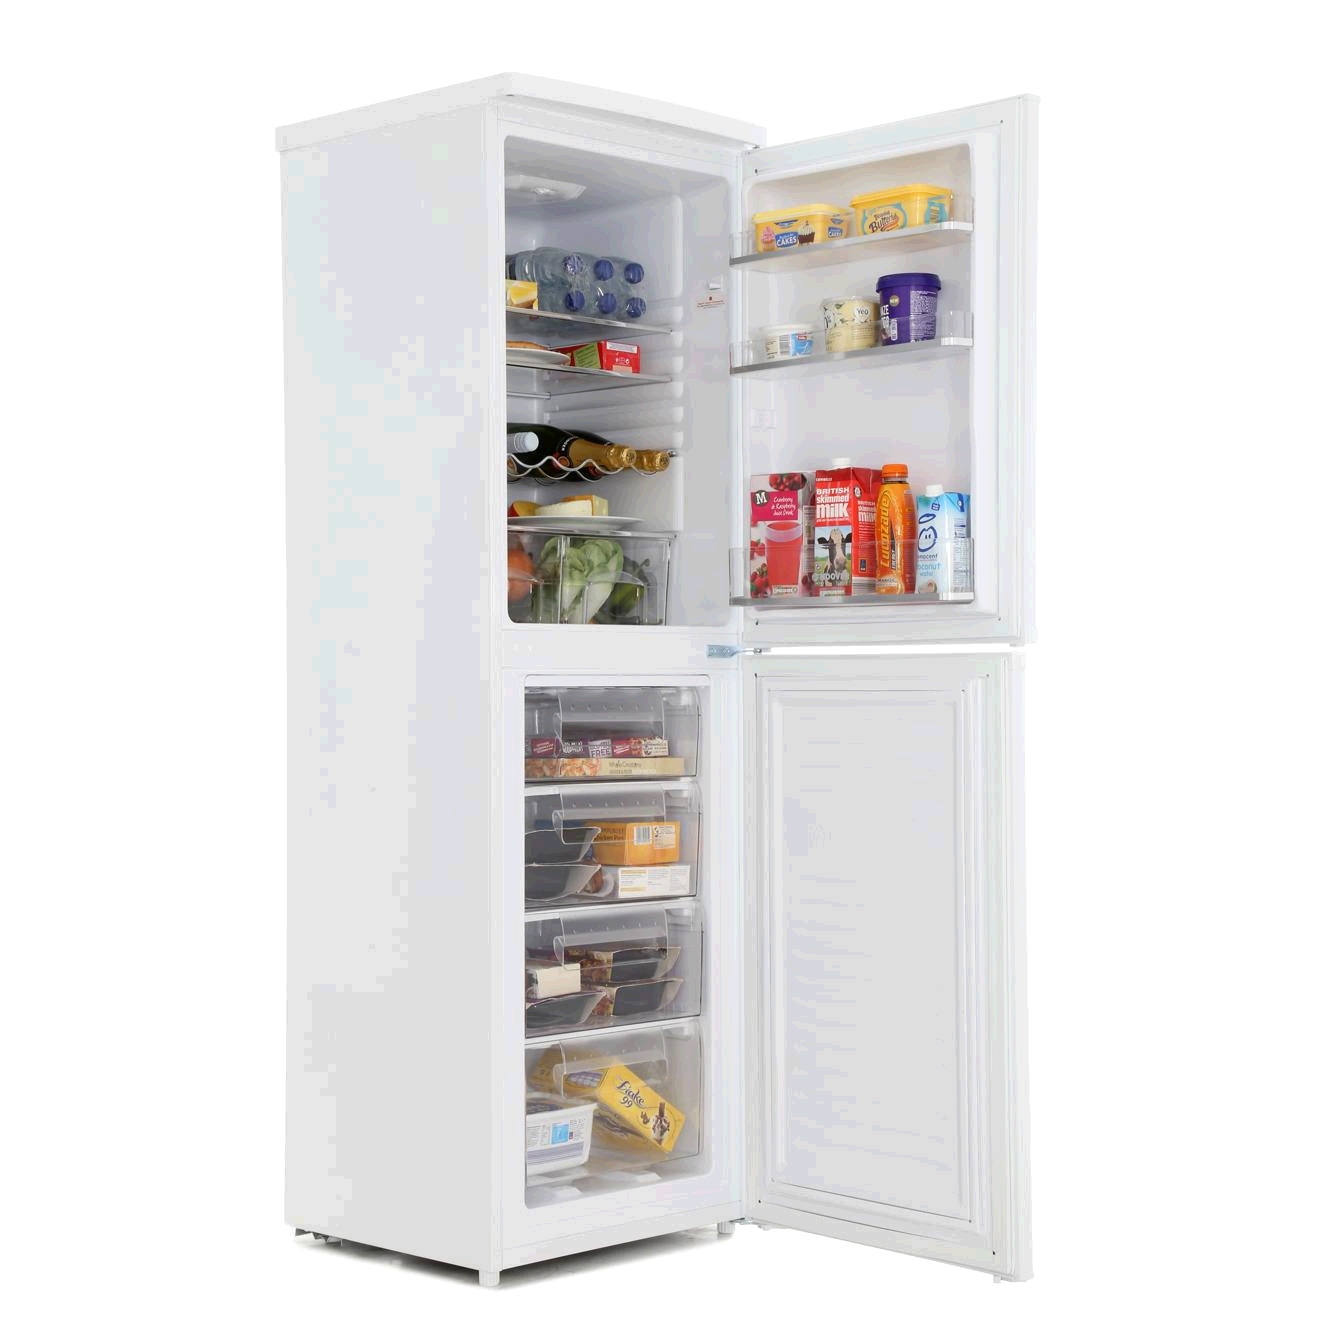 Hoover HSC574W H 175cm 55 wide 4 drawer Freezer White A+ Manual Defrost 140/110Litre